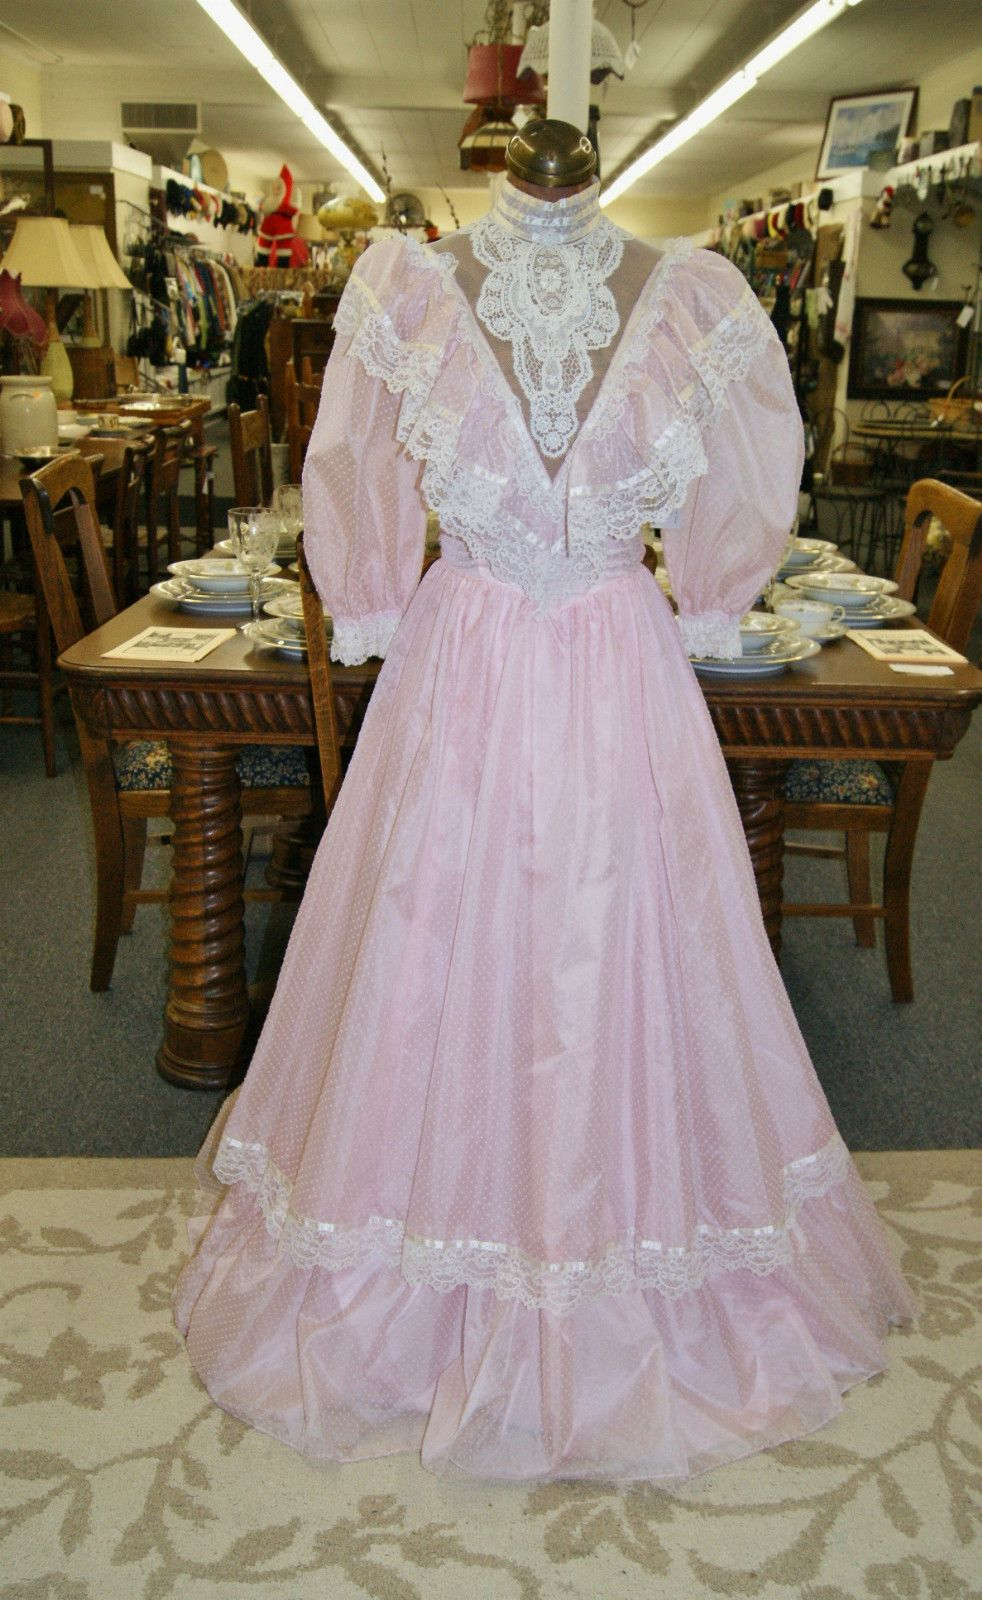 Vintage 1980s Gunne Sax Formal Prom Dress by Jessica McClintock Size ...